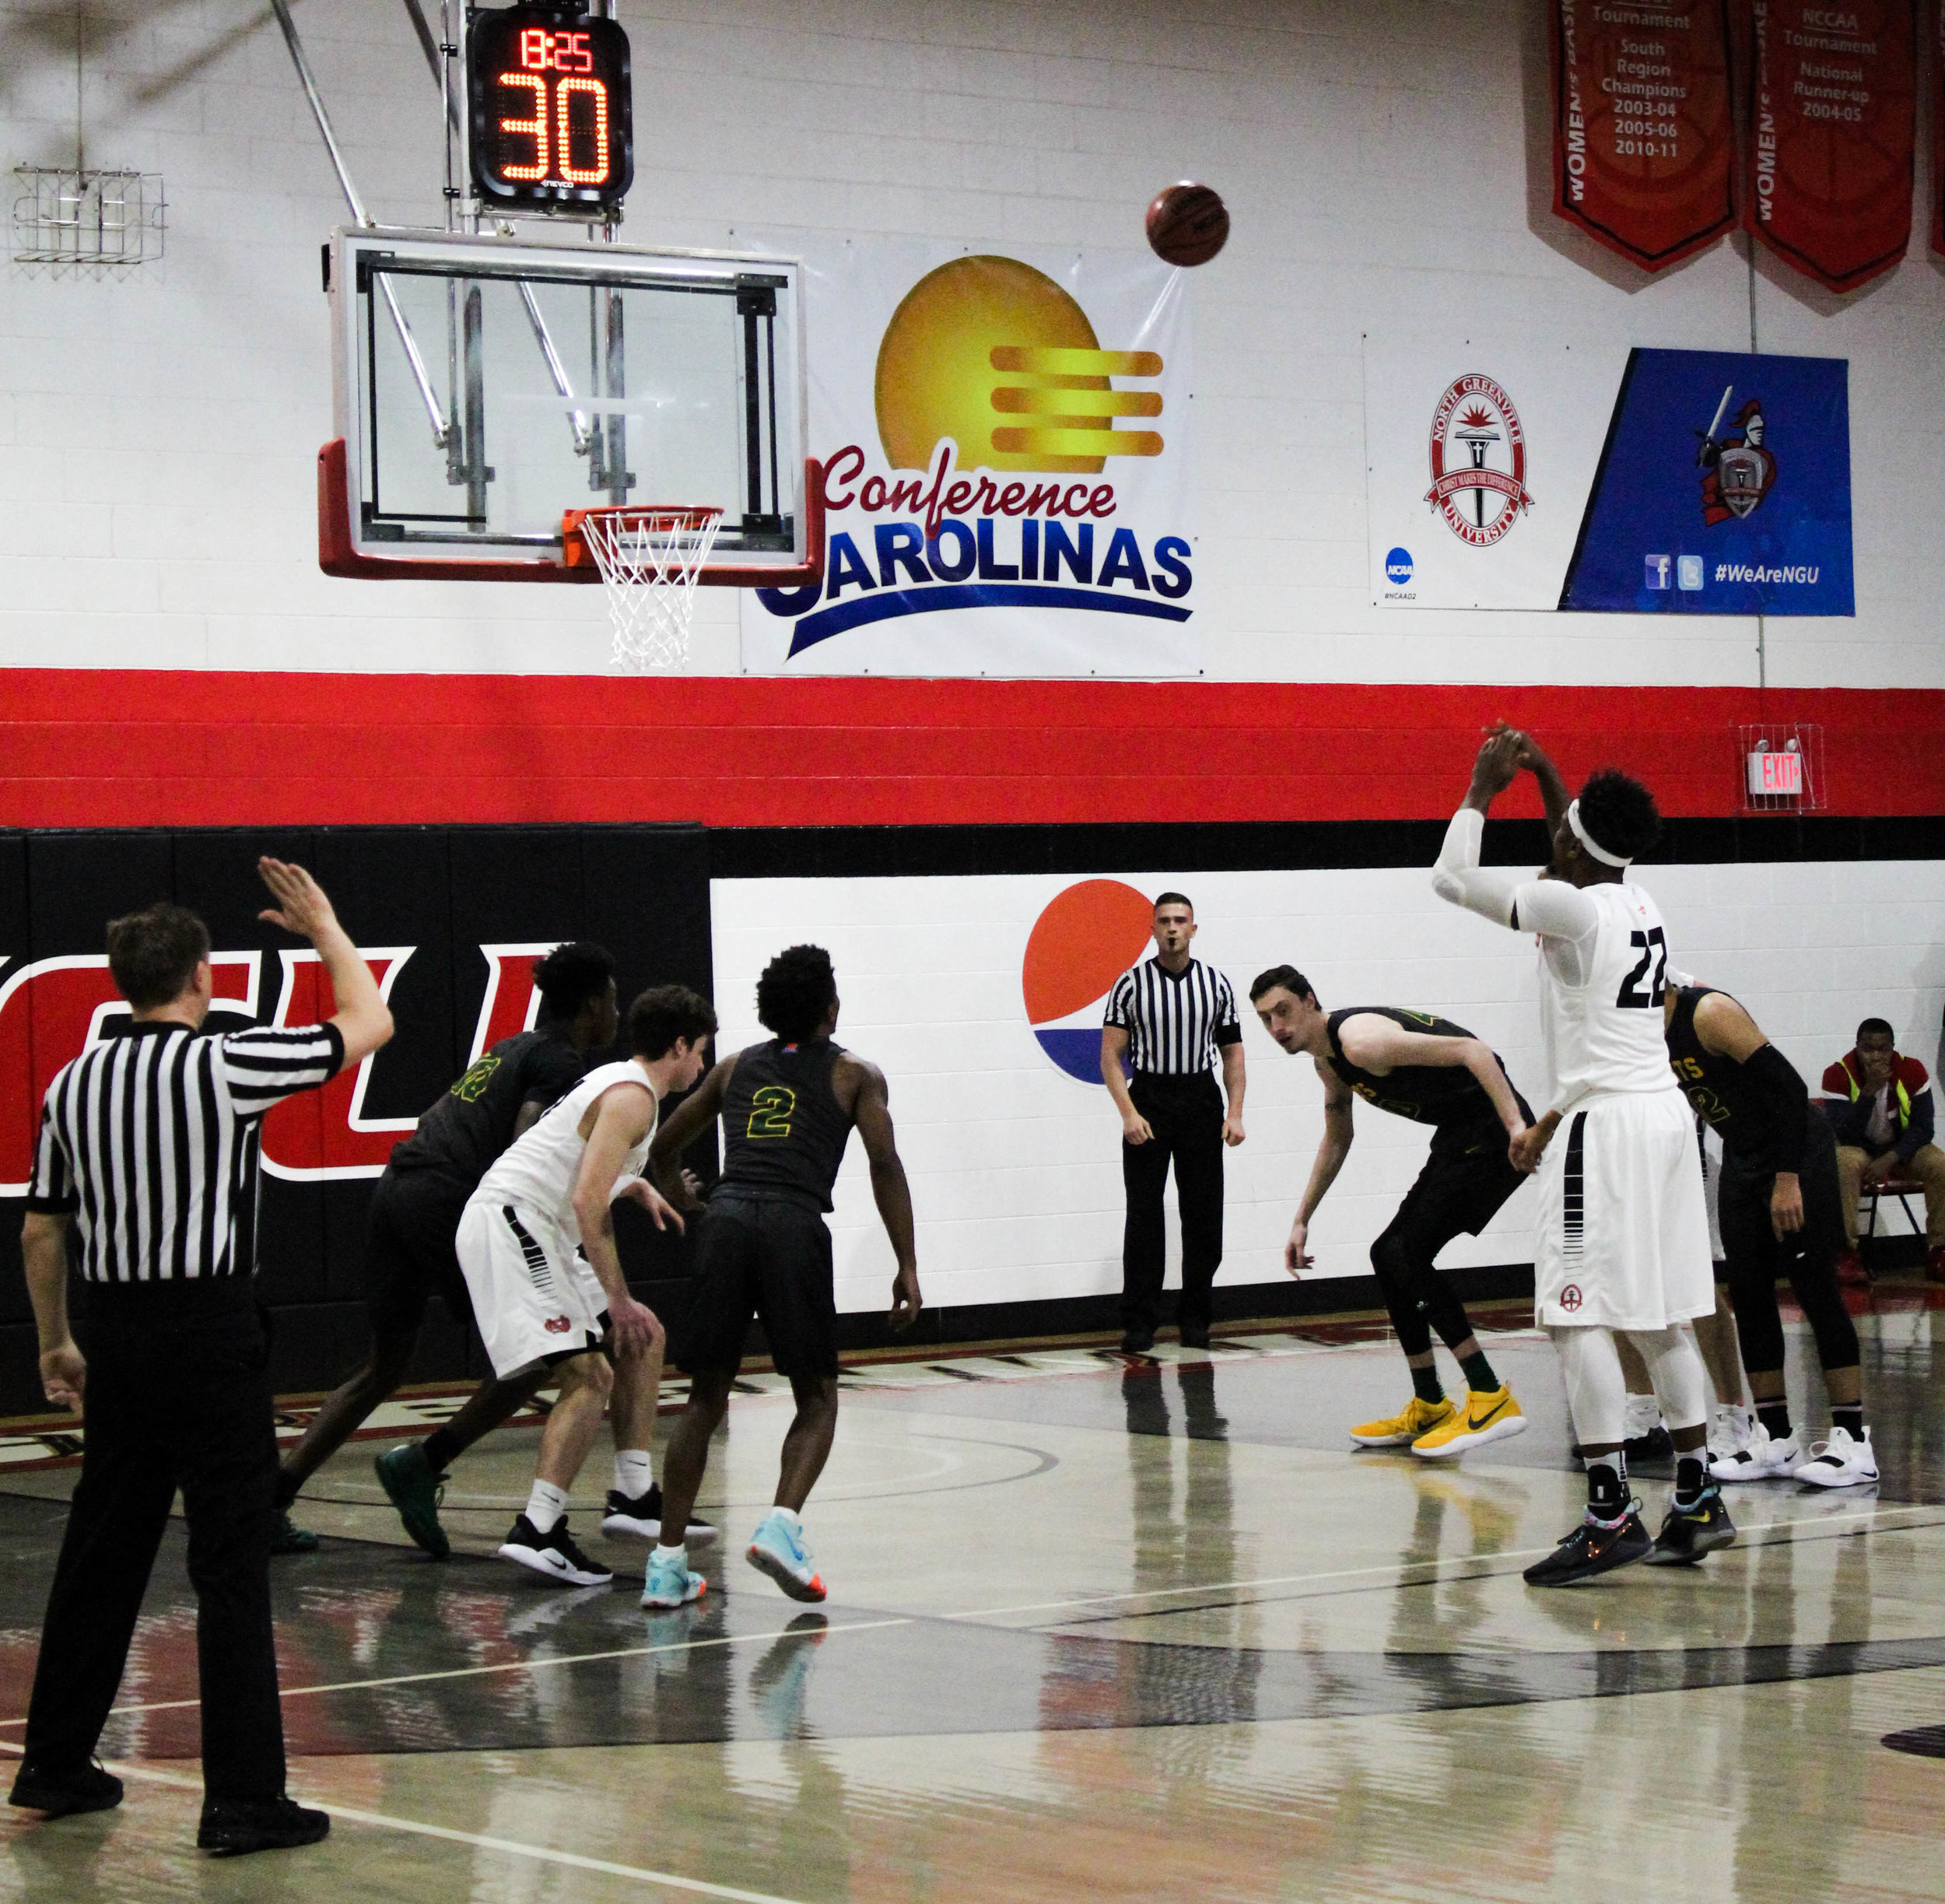 After being fouled while shooting, Roderick Howell (22), a senior at NGU, shoots and makes a foul shot.